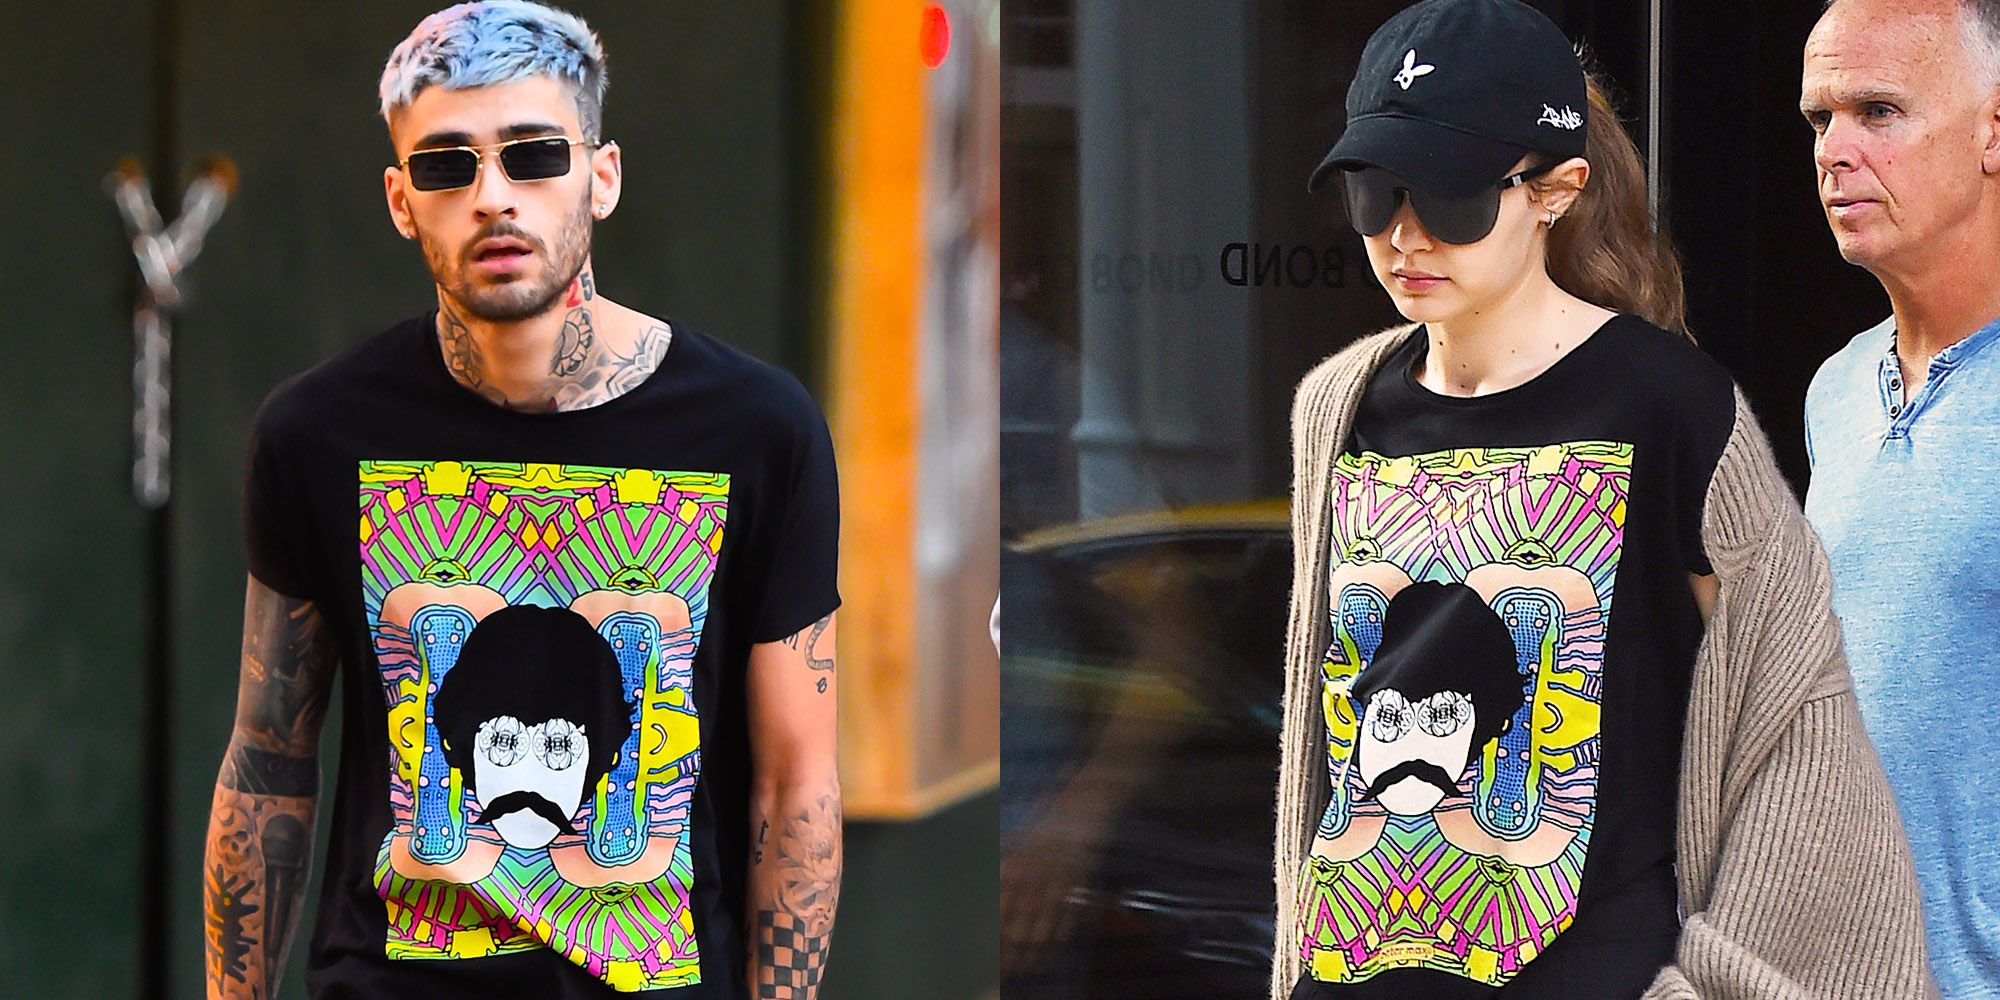 af3a75da51 Zayn Malik Wore Gigi Hadid's Wrangler T-shirt Out and Looked Pretty  Freaking Good In It